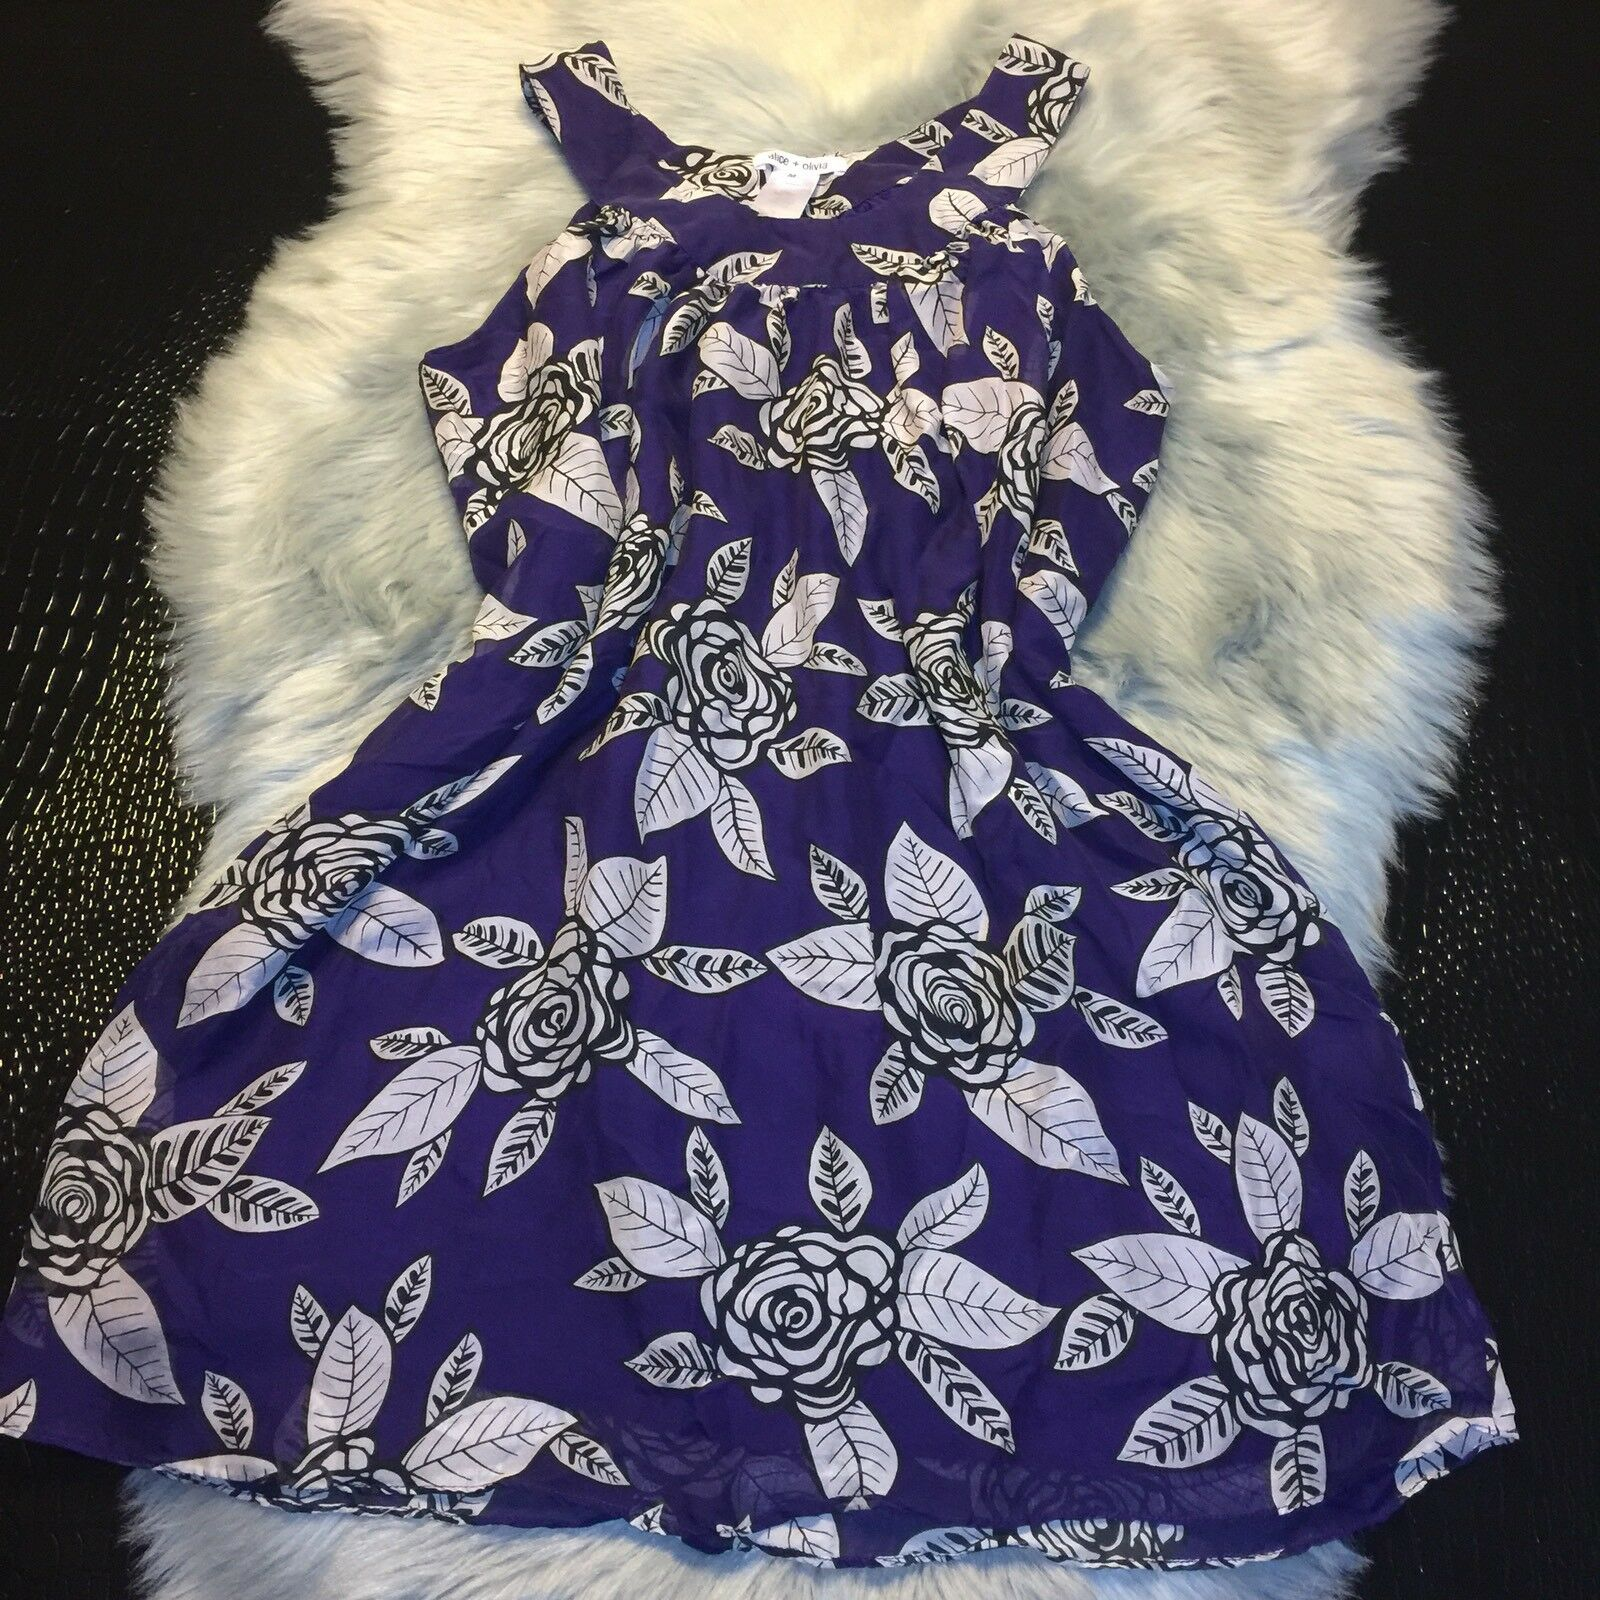 Alice Olivia Purple Floral Silk Dress Size M Super CUTE